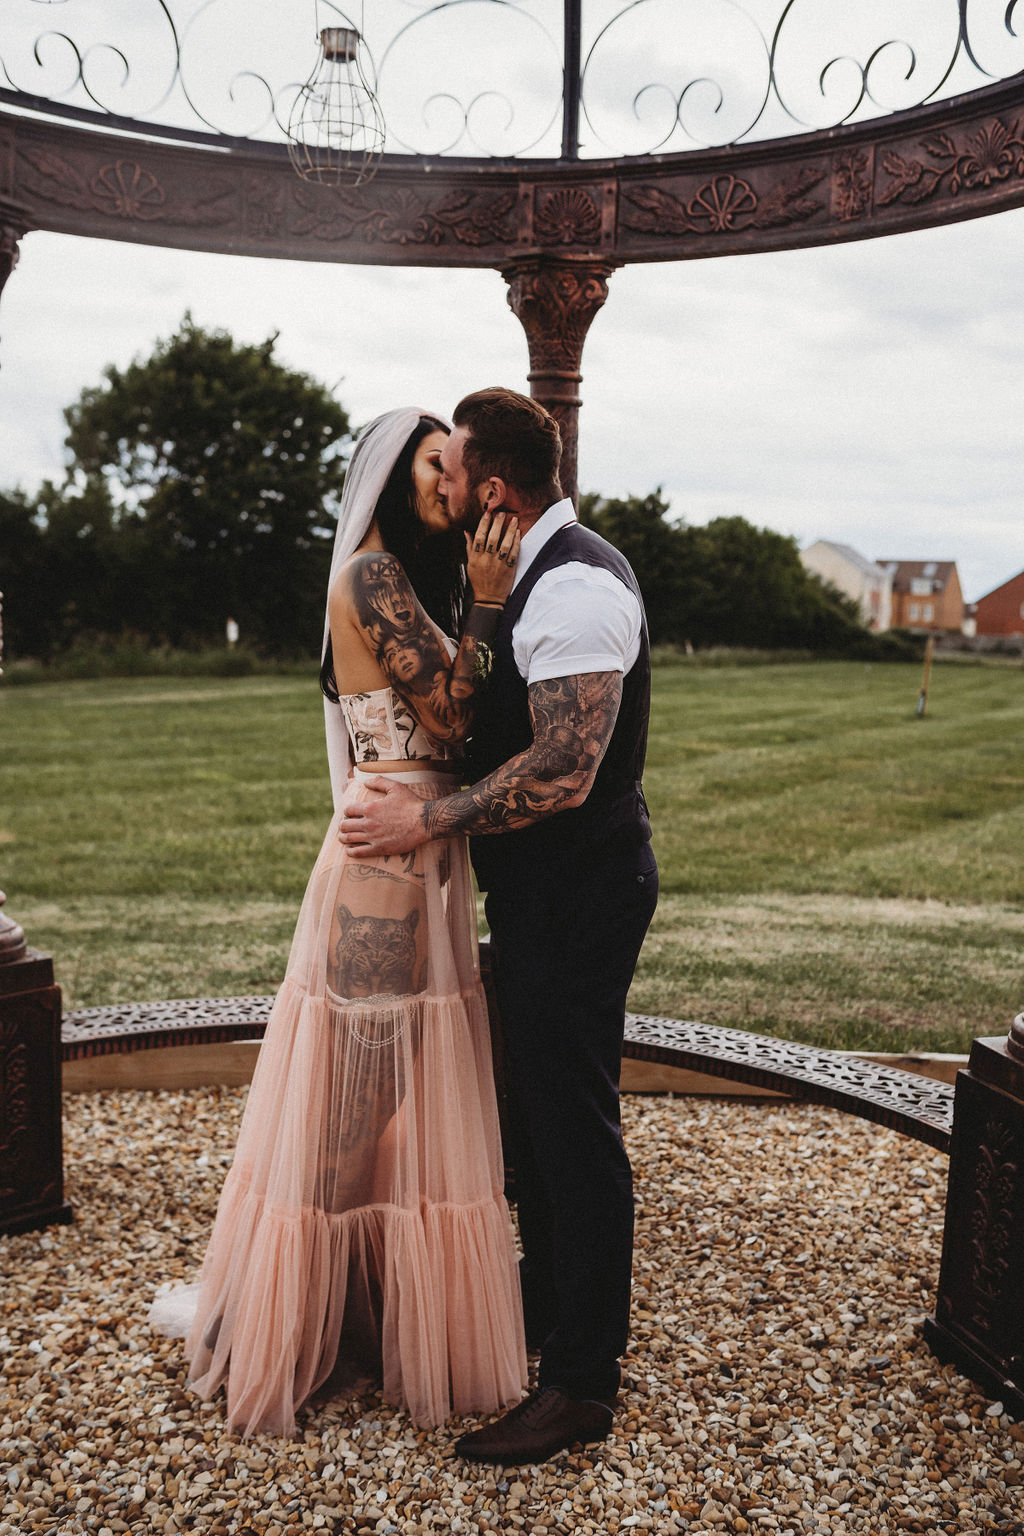 tattooed bride and groom kiss - alternative farm wedding, edgy wedding, tattooed wedding, alternative wedding